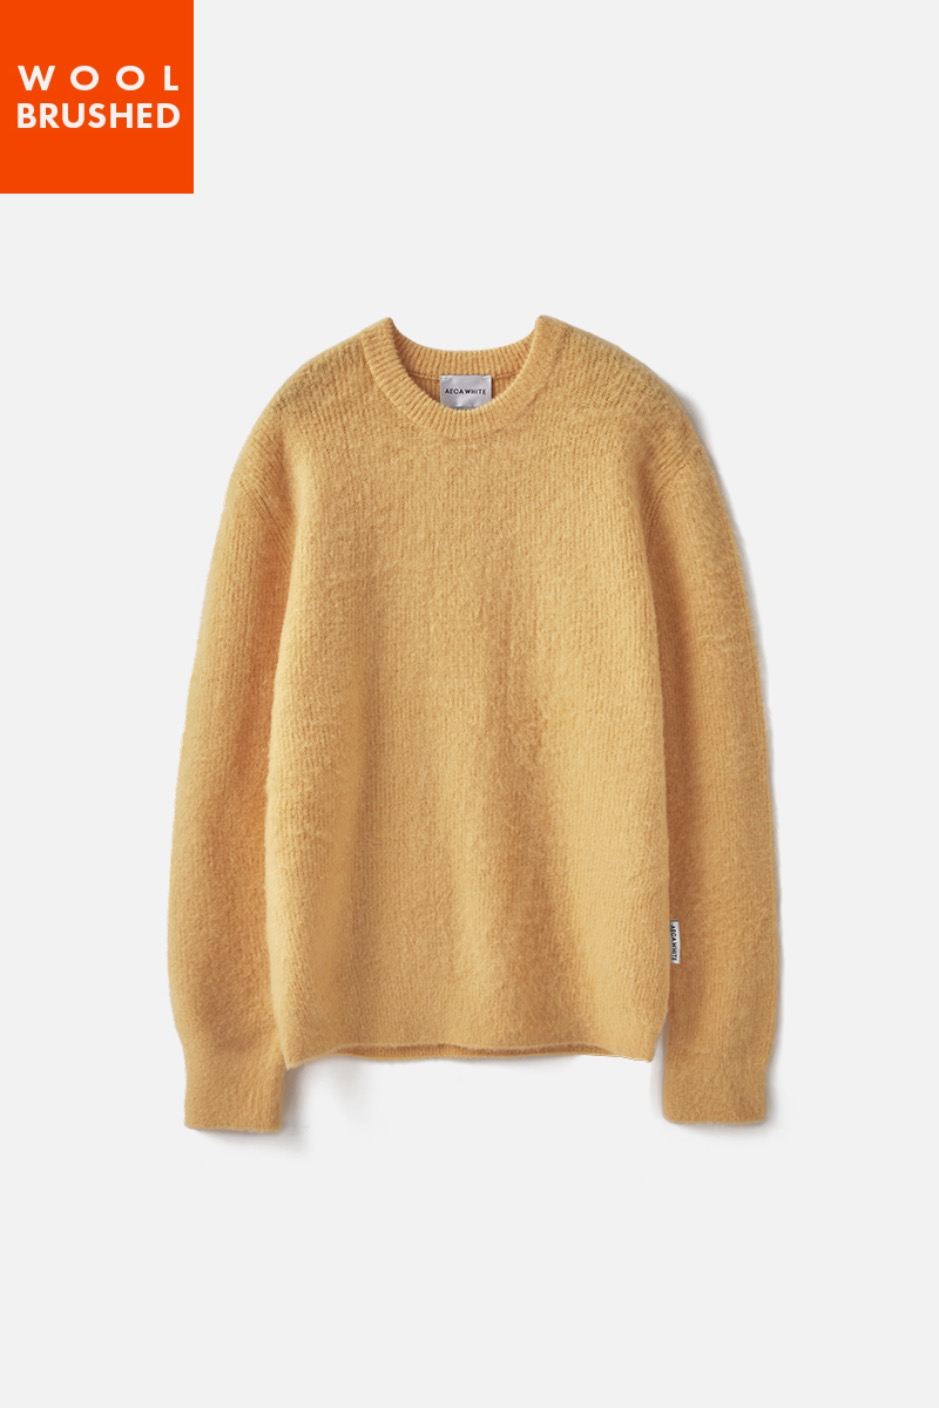 OVERSIZE WOOL BRUSHED KNIT-YELLOW